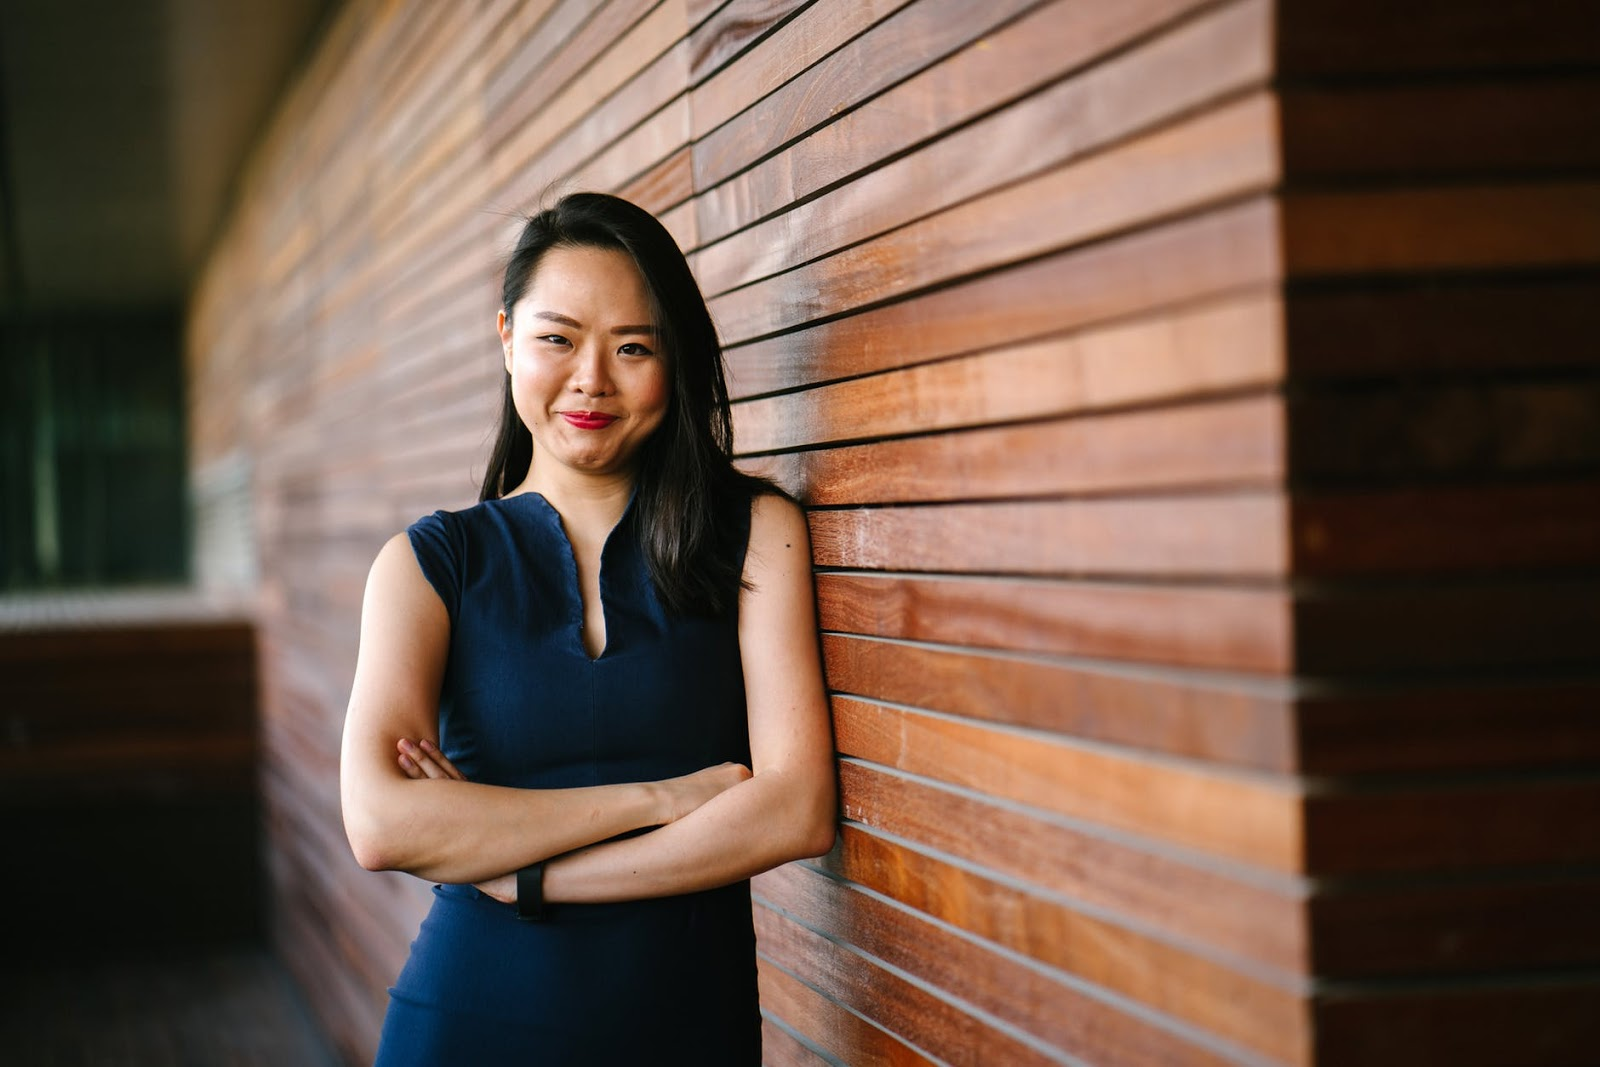 woman in blue dress posing against wooden partition thinking about changing jobs advice